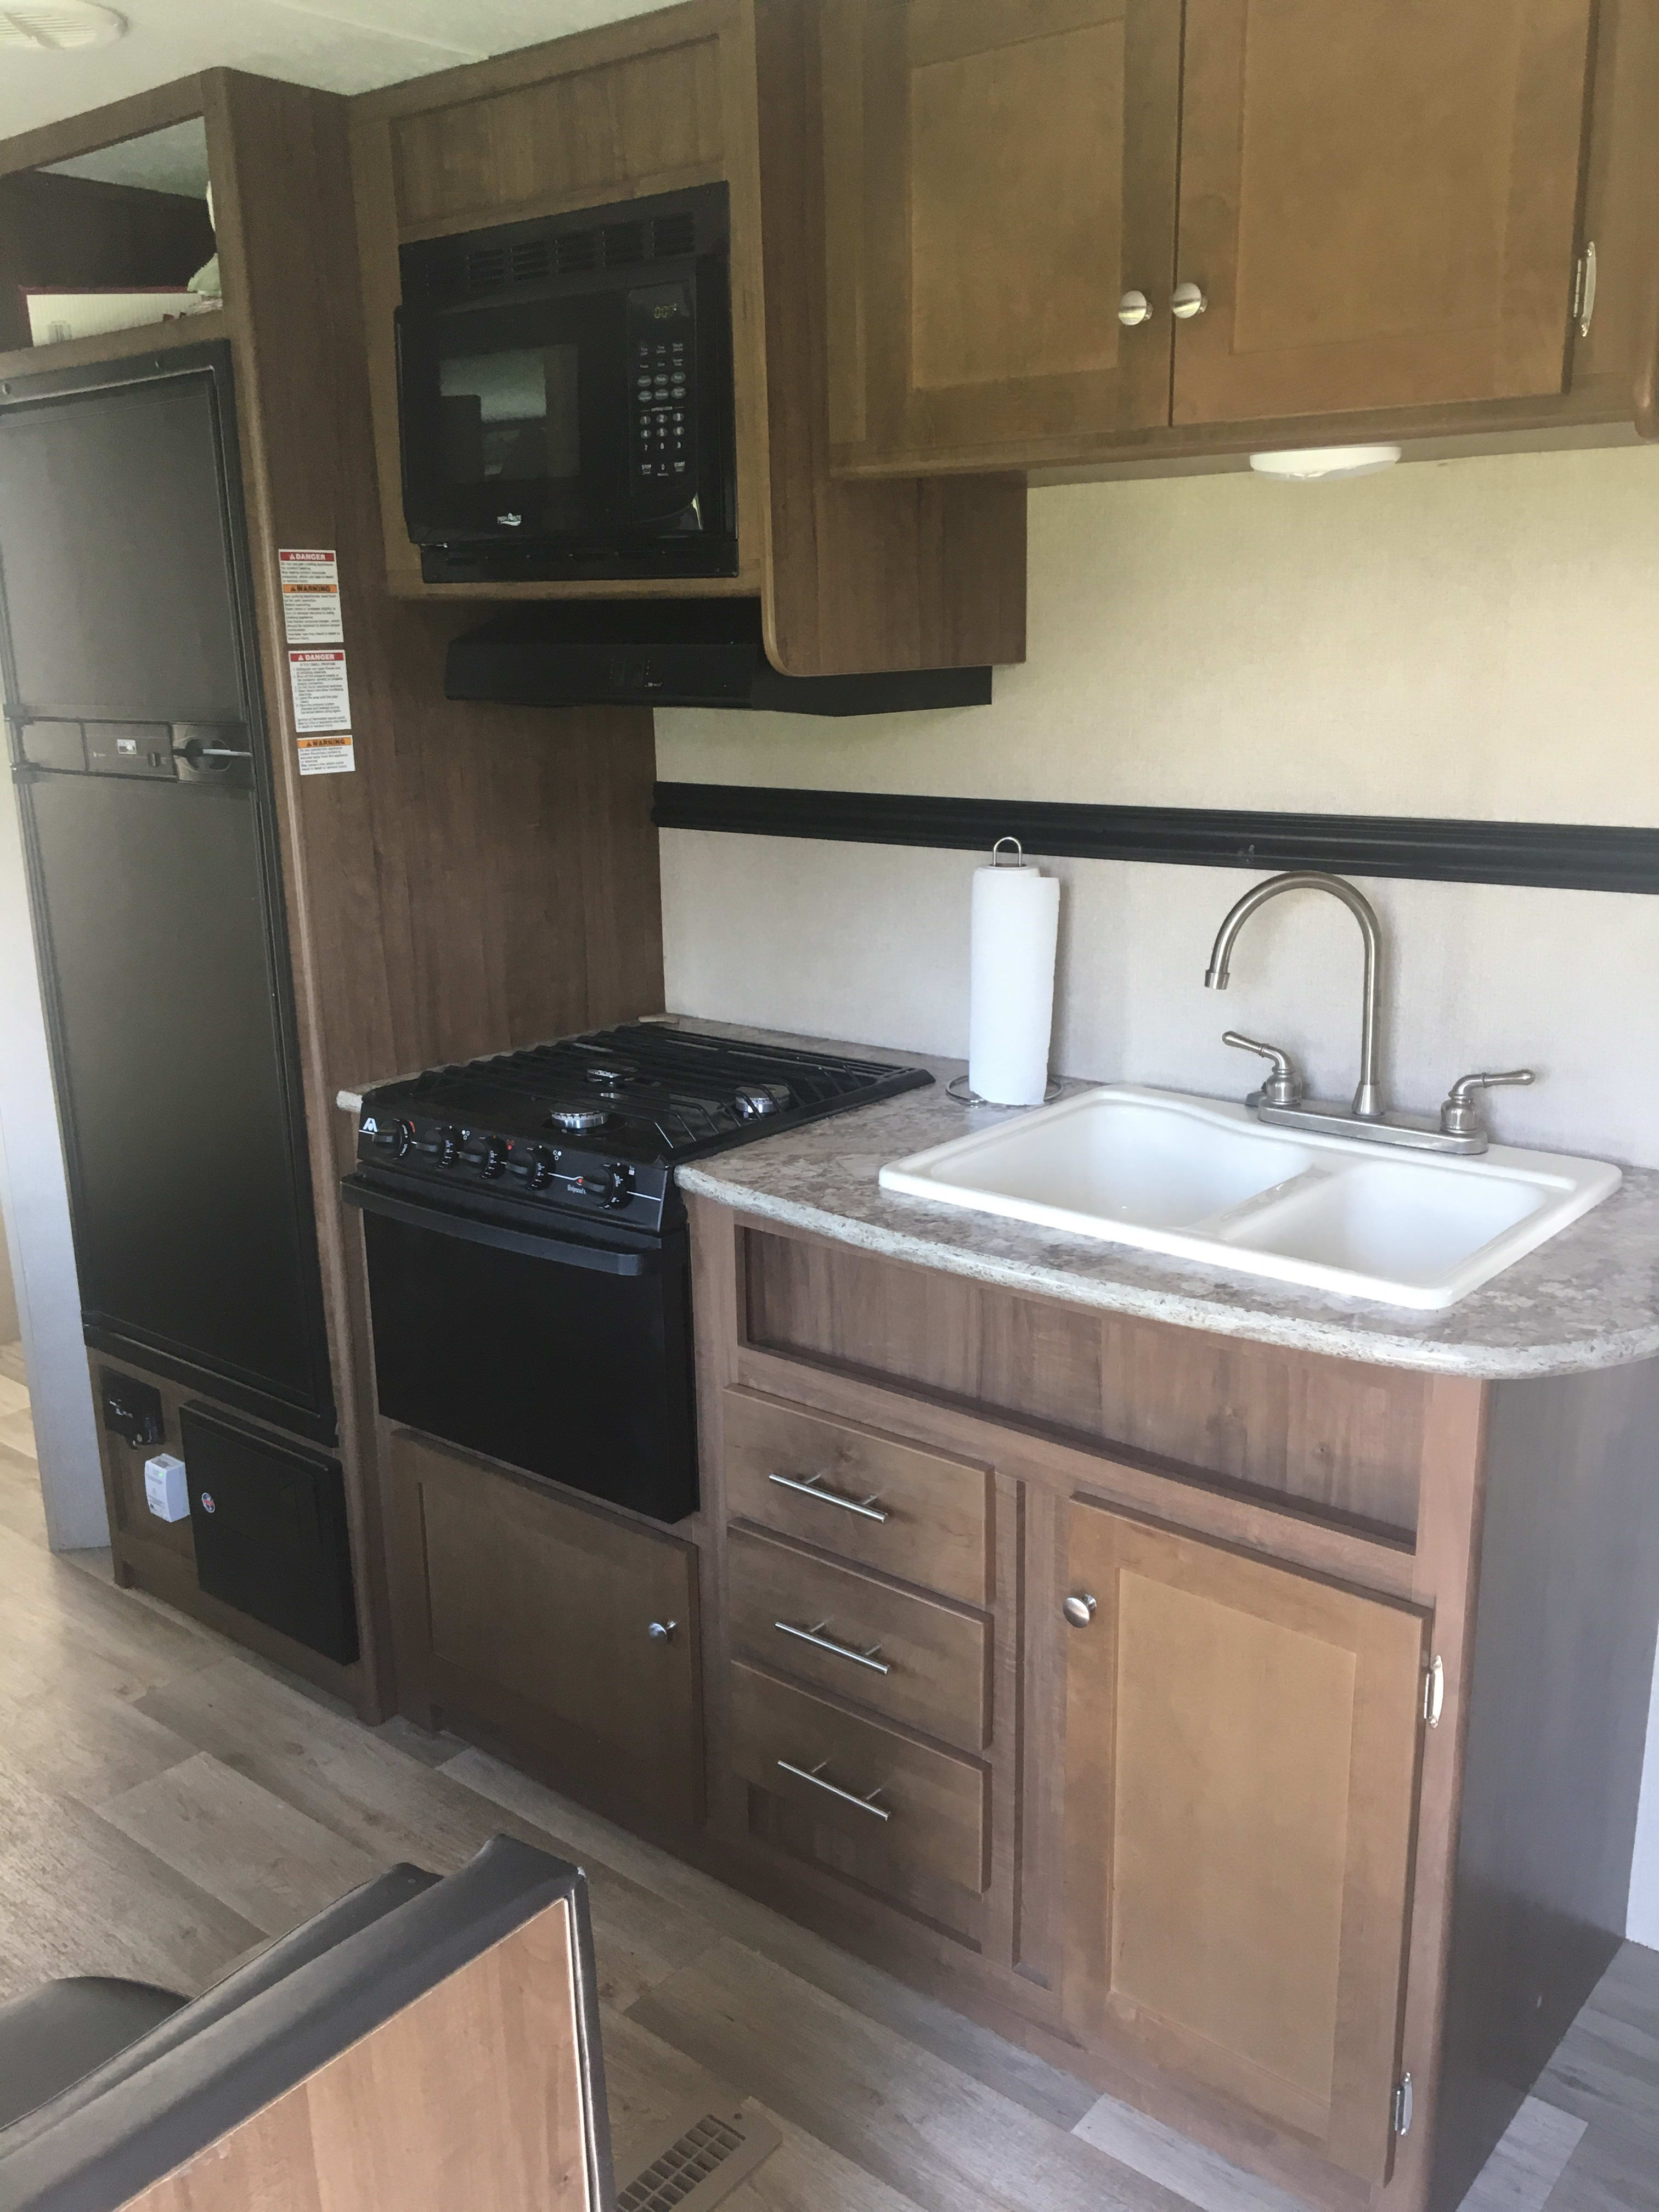 With a freezer, fridge, three burner stove, oven, microwave and two basin sink, this kitchen brings all of the comforts of home to wherever your adventure may take you! . Dutchmen Aspen Trail 2016